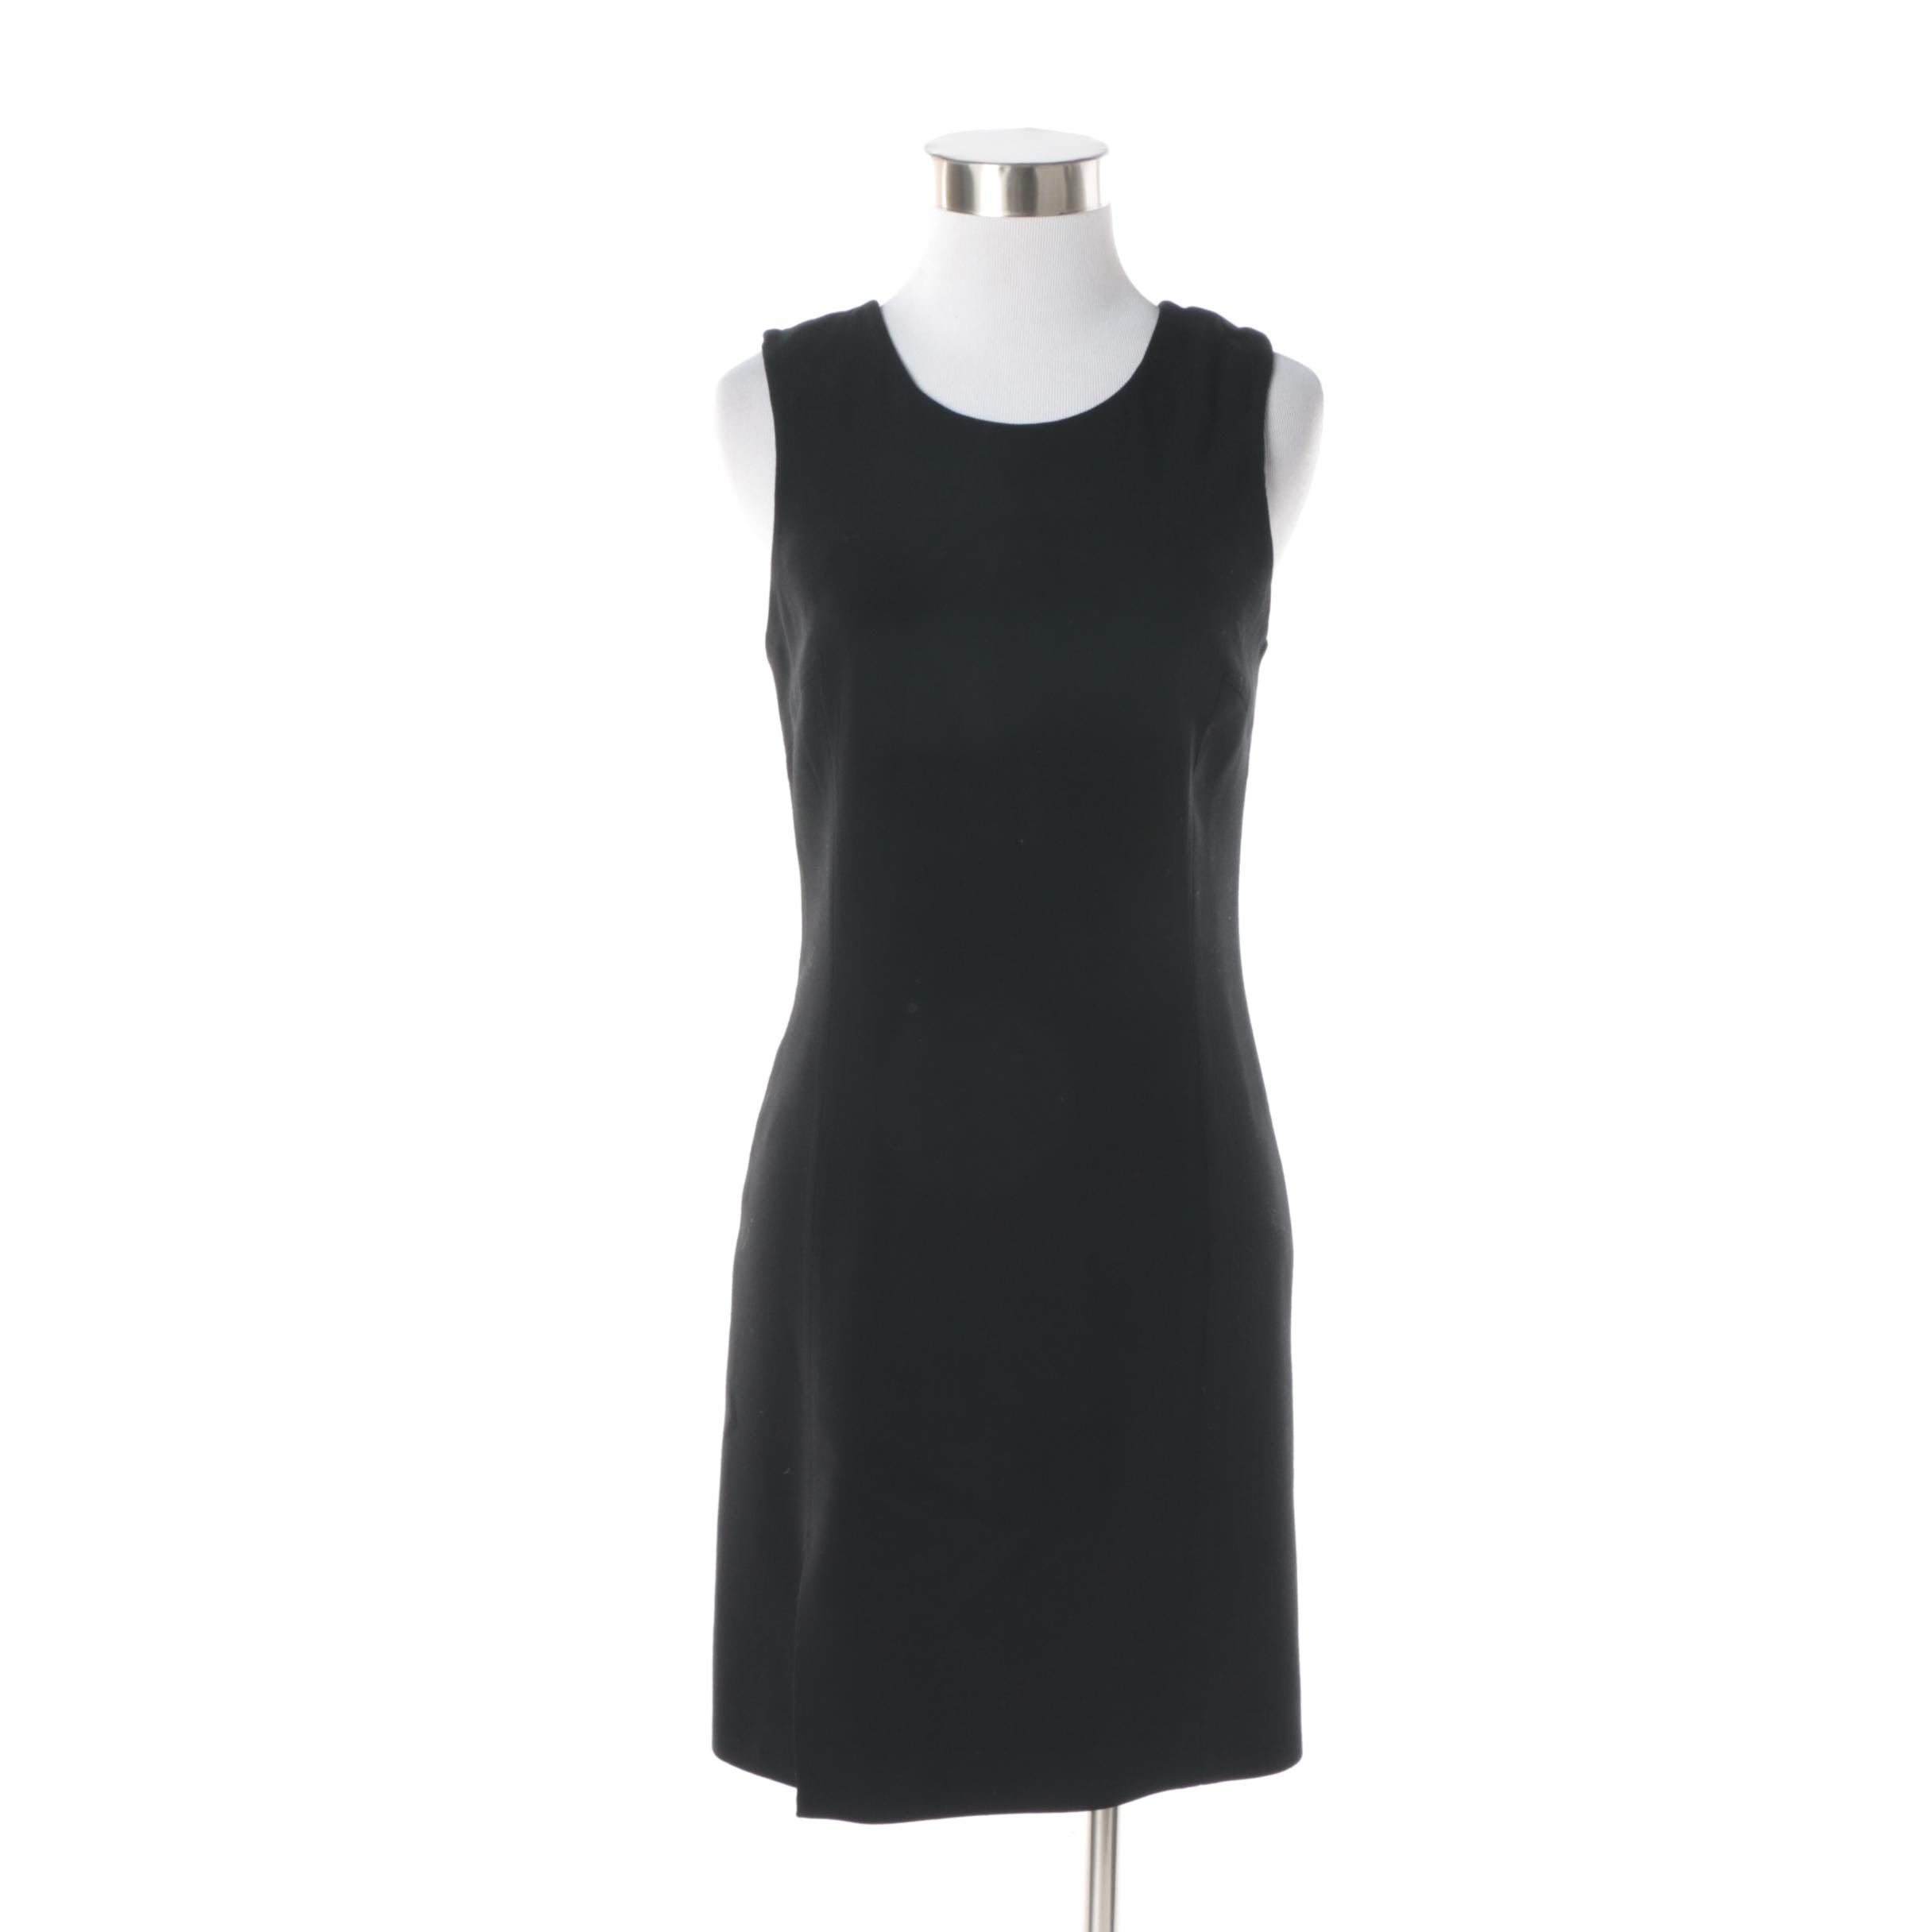 Women's Grace MMXIII Sleeveless Cocktail Dress with Leather Bow Accents to Back